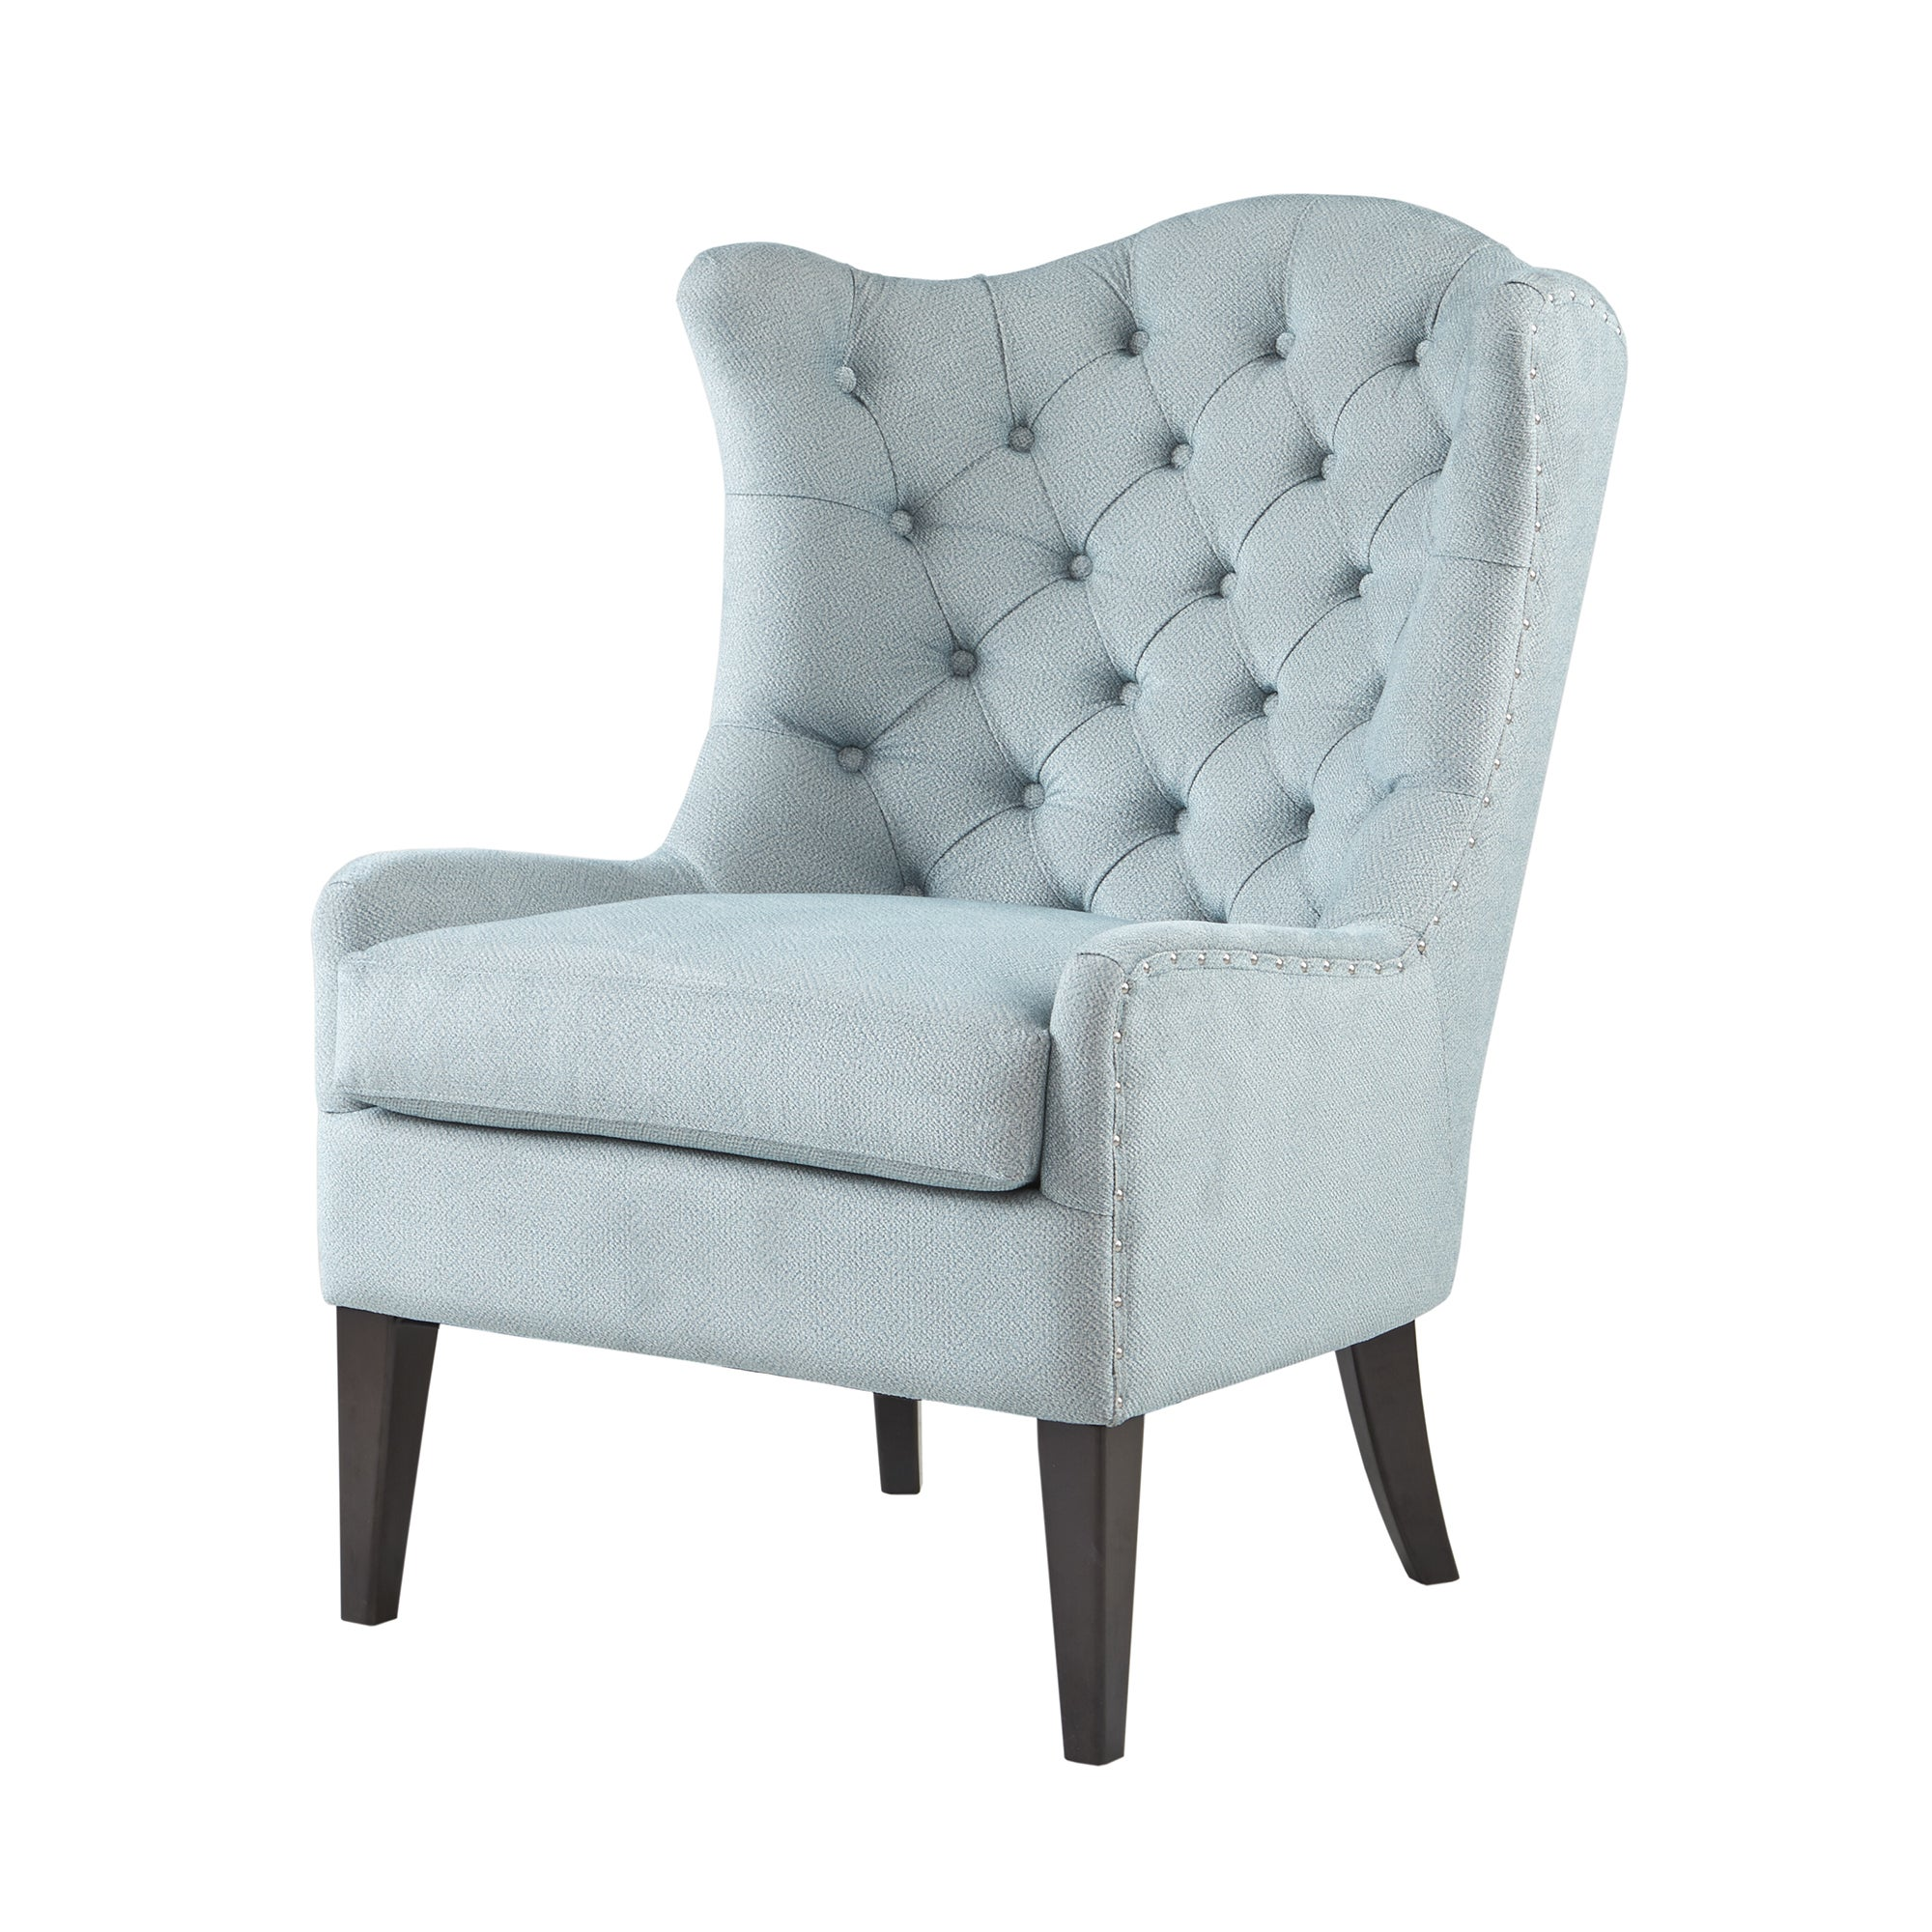 Superieur Shop Madison Park Loretta Light Blue Tufted Accent Chair   On Sale   Free  Shipping Today   Overstock.com   17178029